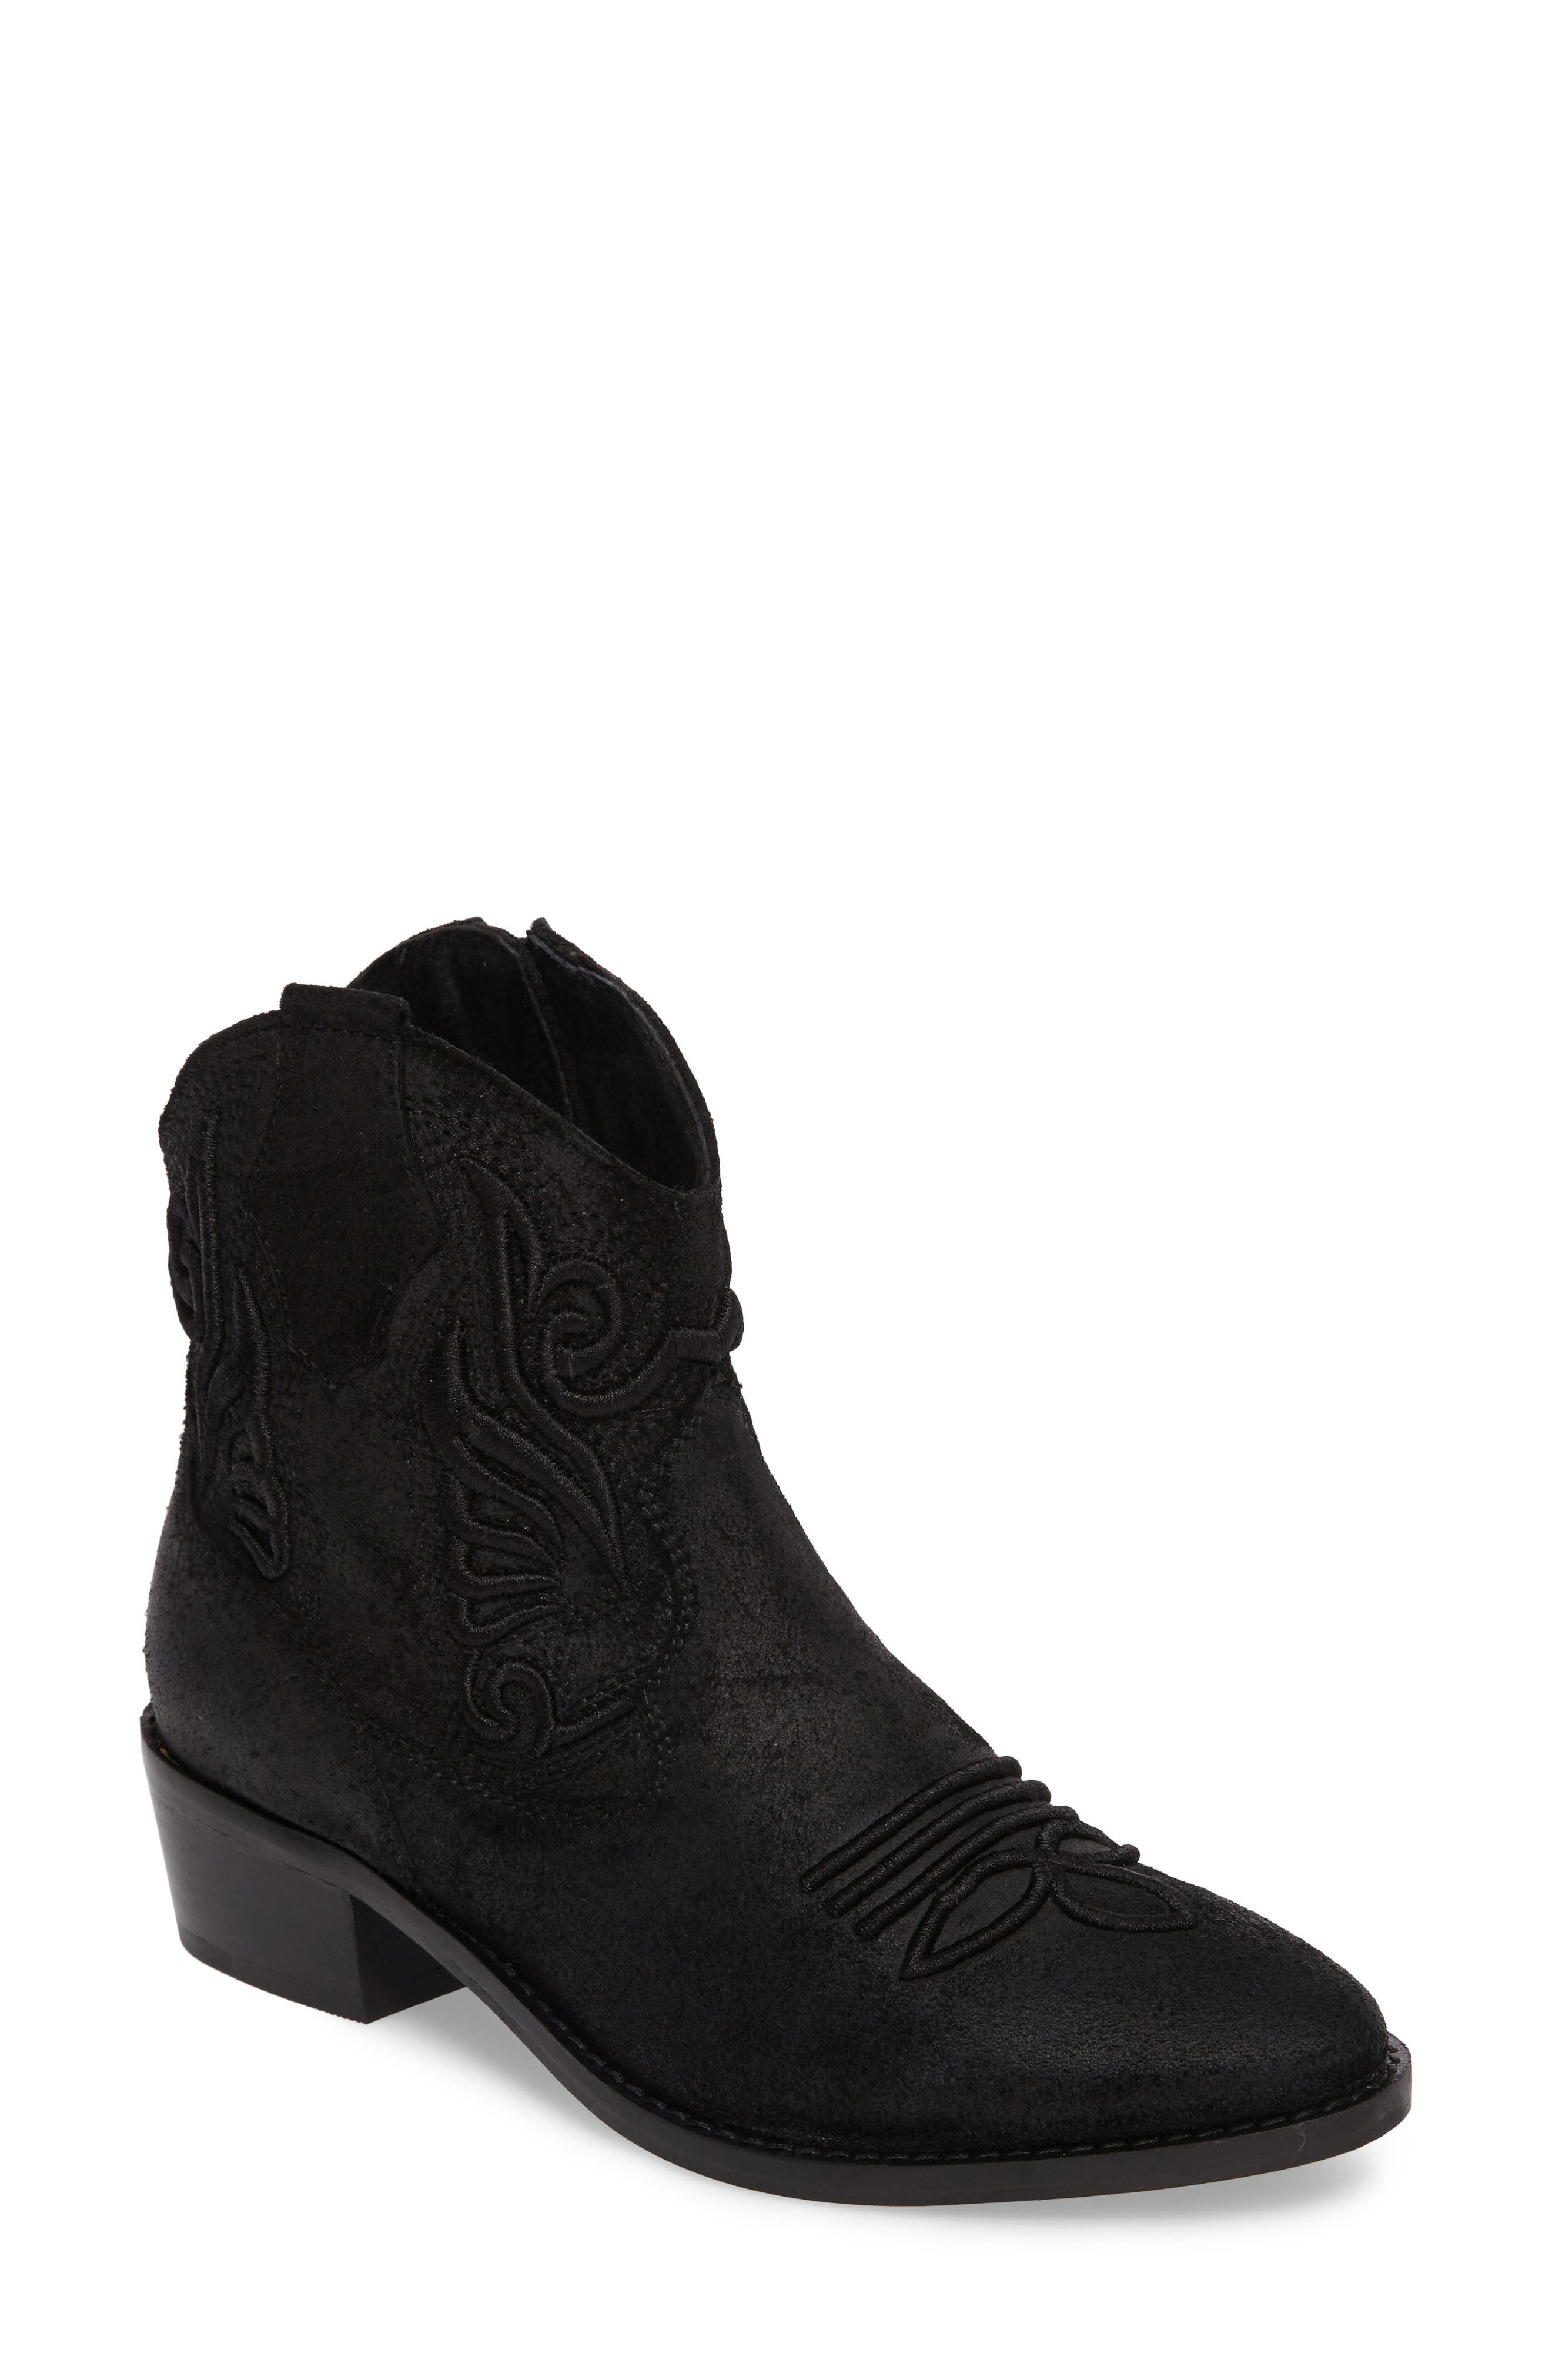 Apple Crumble Embroidered Bootie,                         Main,                         color, 001